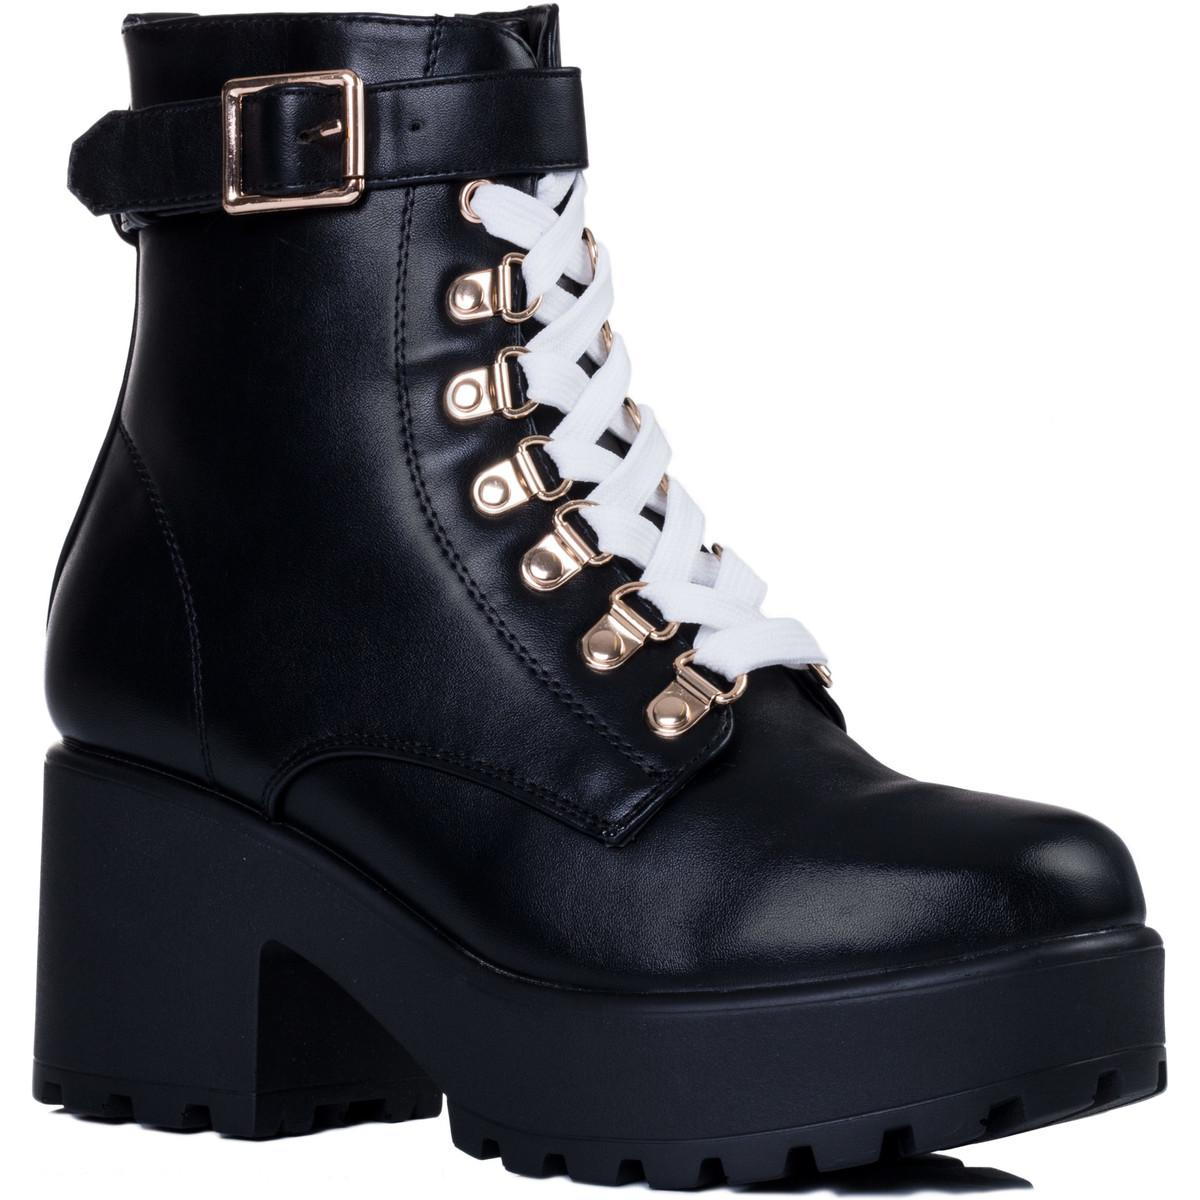 f9c16969f3b Viciouser Women's Low Ankle Boots In Black